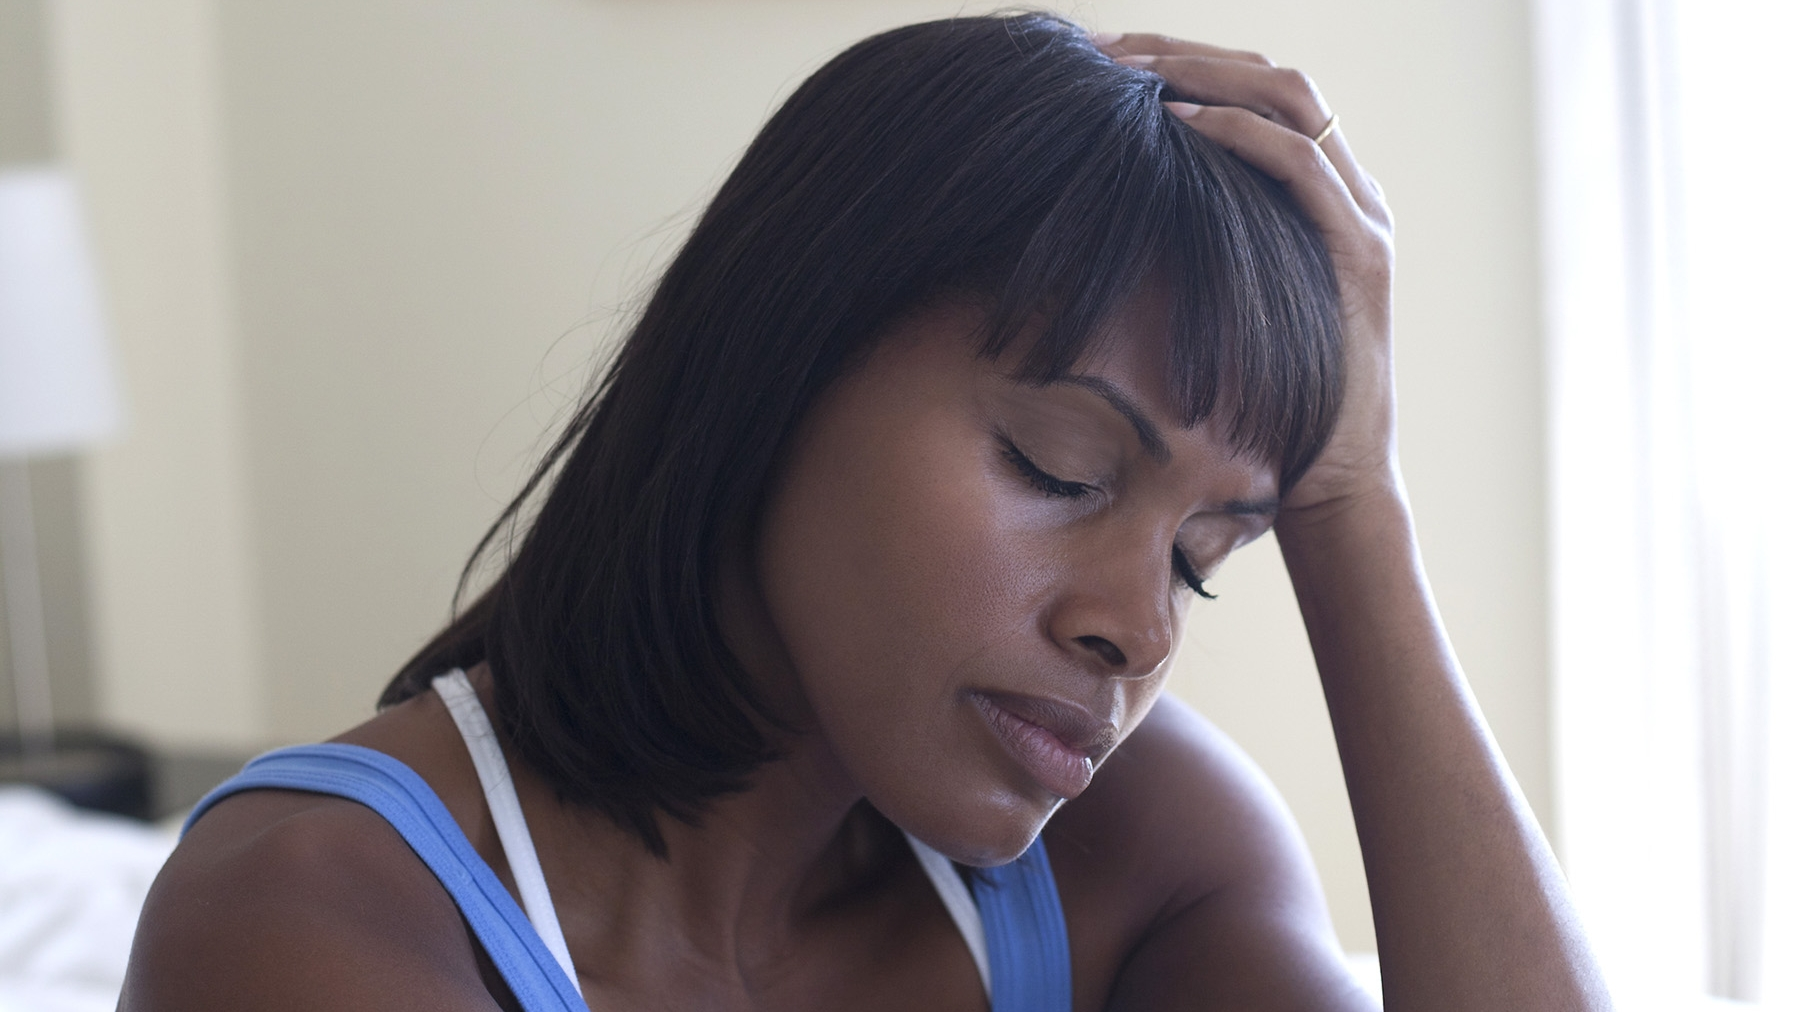 Lady seeks help as she narrates her abusive relationship with rich boyfriend